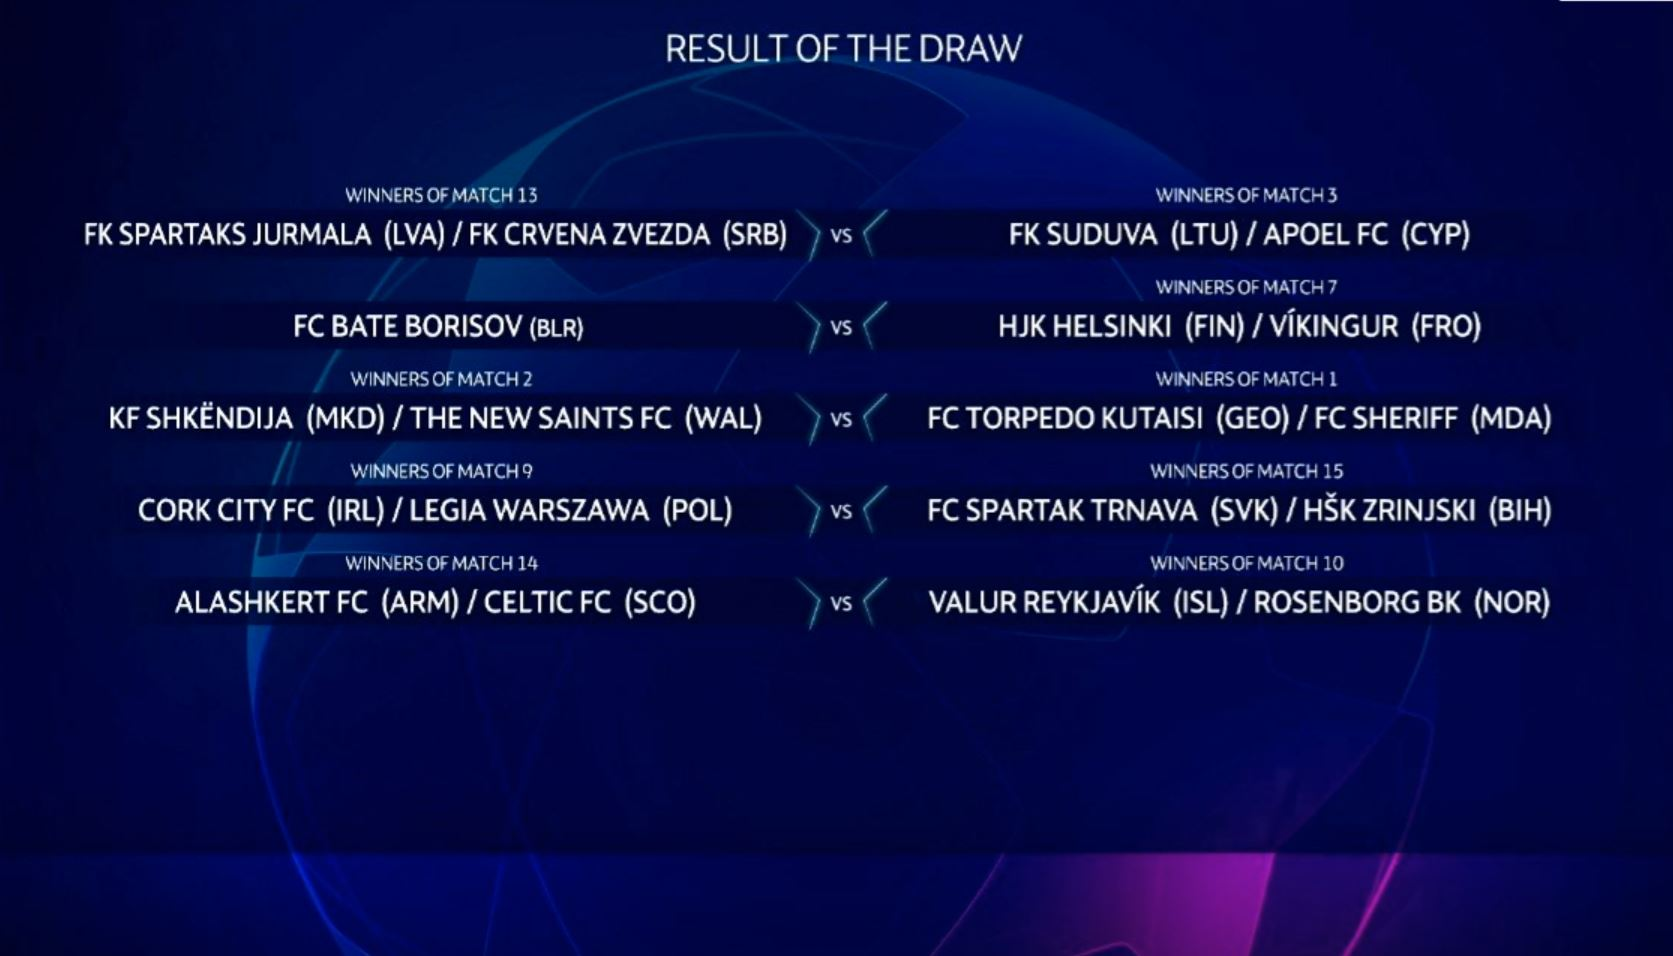 Result of the #UCL 2nd qualifying round draw �� https://t.co/juh1m9FsIQ